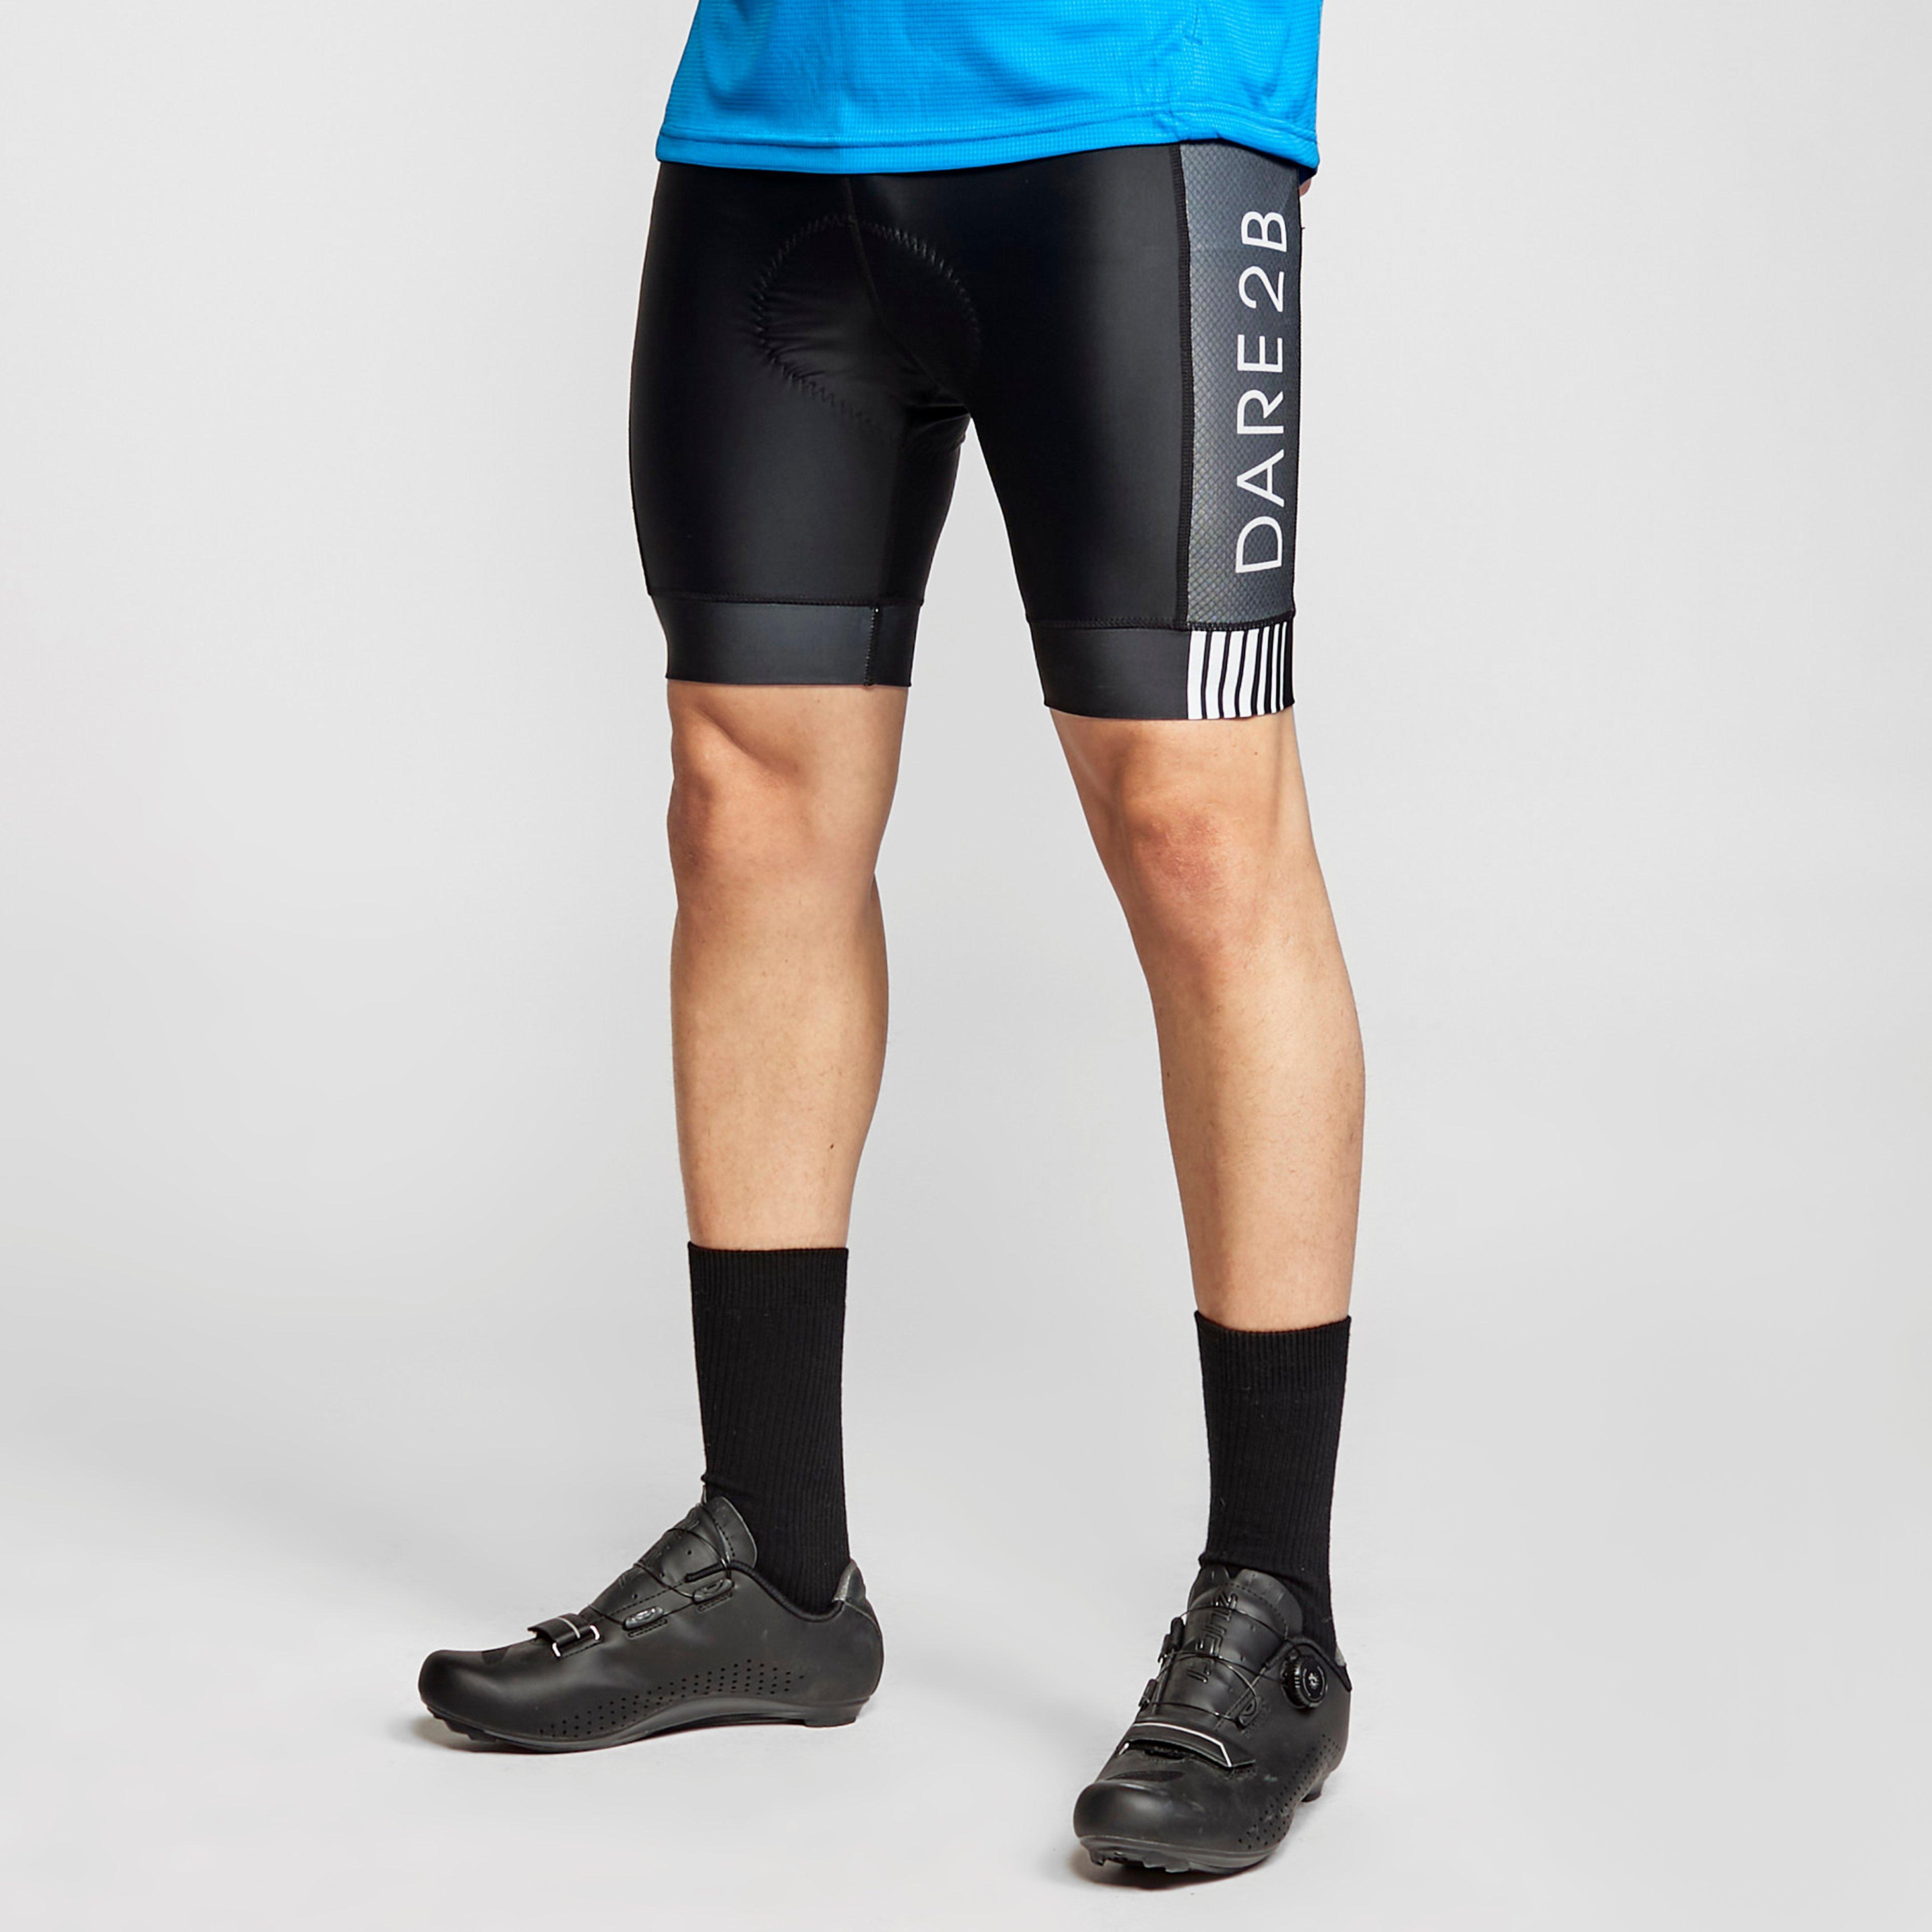 Dare 2B Men's Virtuosity Quick-Drying Cycling Shorts, BLK/BLK